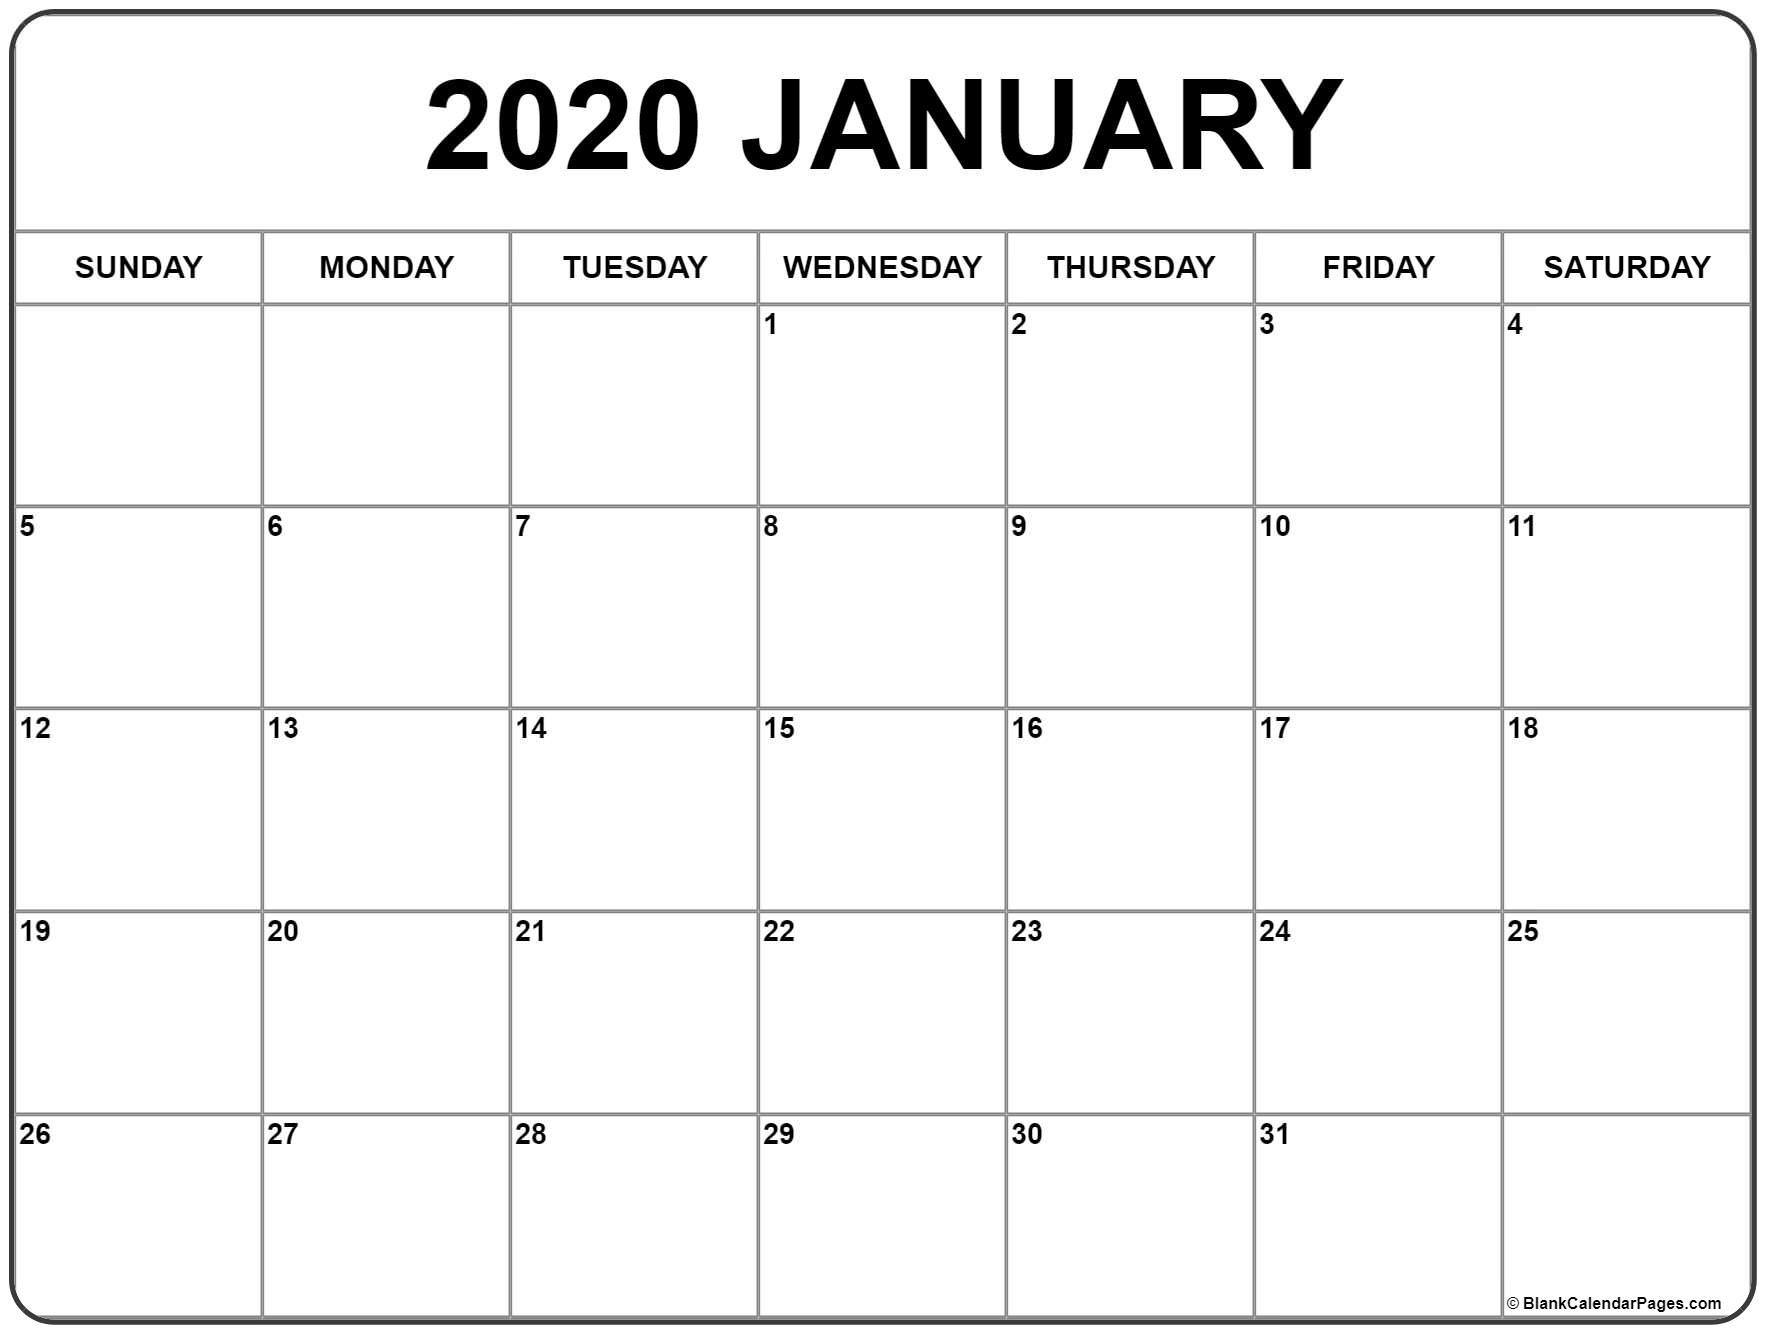 January 2020 Calendar | Free Printable Monthly Calendars for Print Free 2020 Calendars Without Downloading